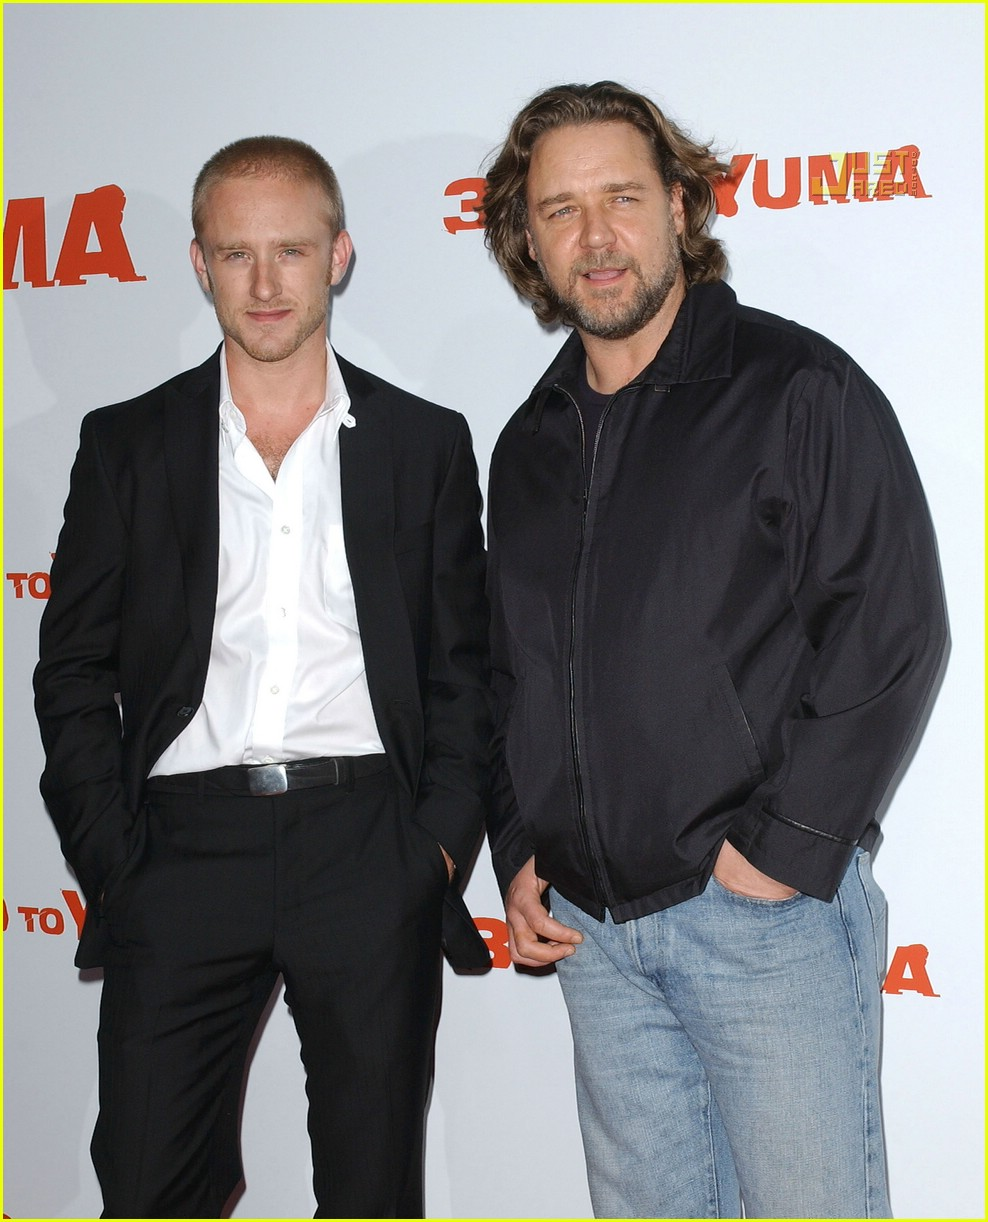 russell crowe yuma premiere 02